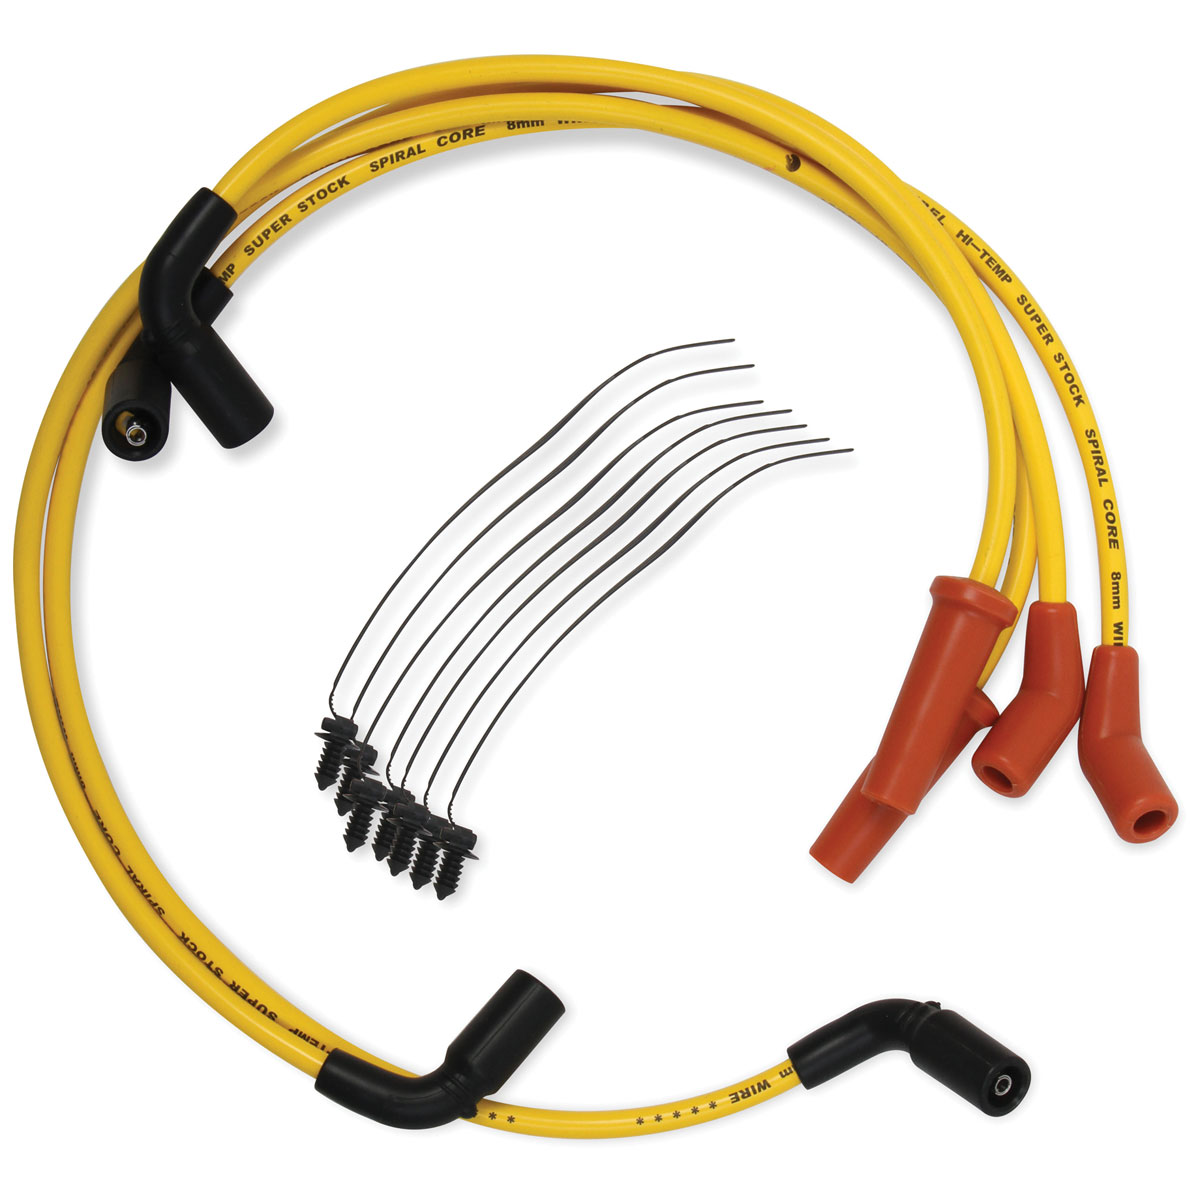 ACCEL Yellow S/S 8mm Spiral Core Wire Set